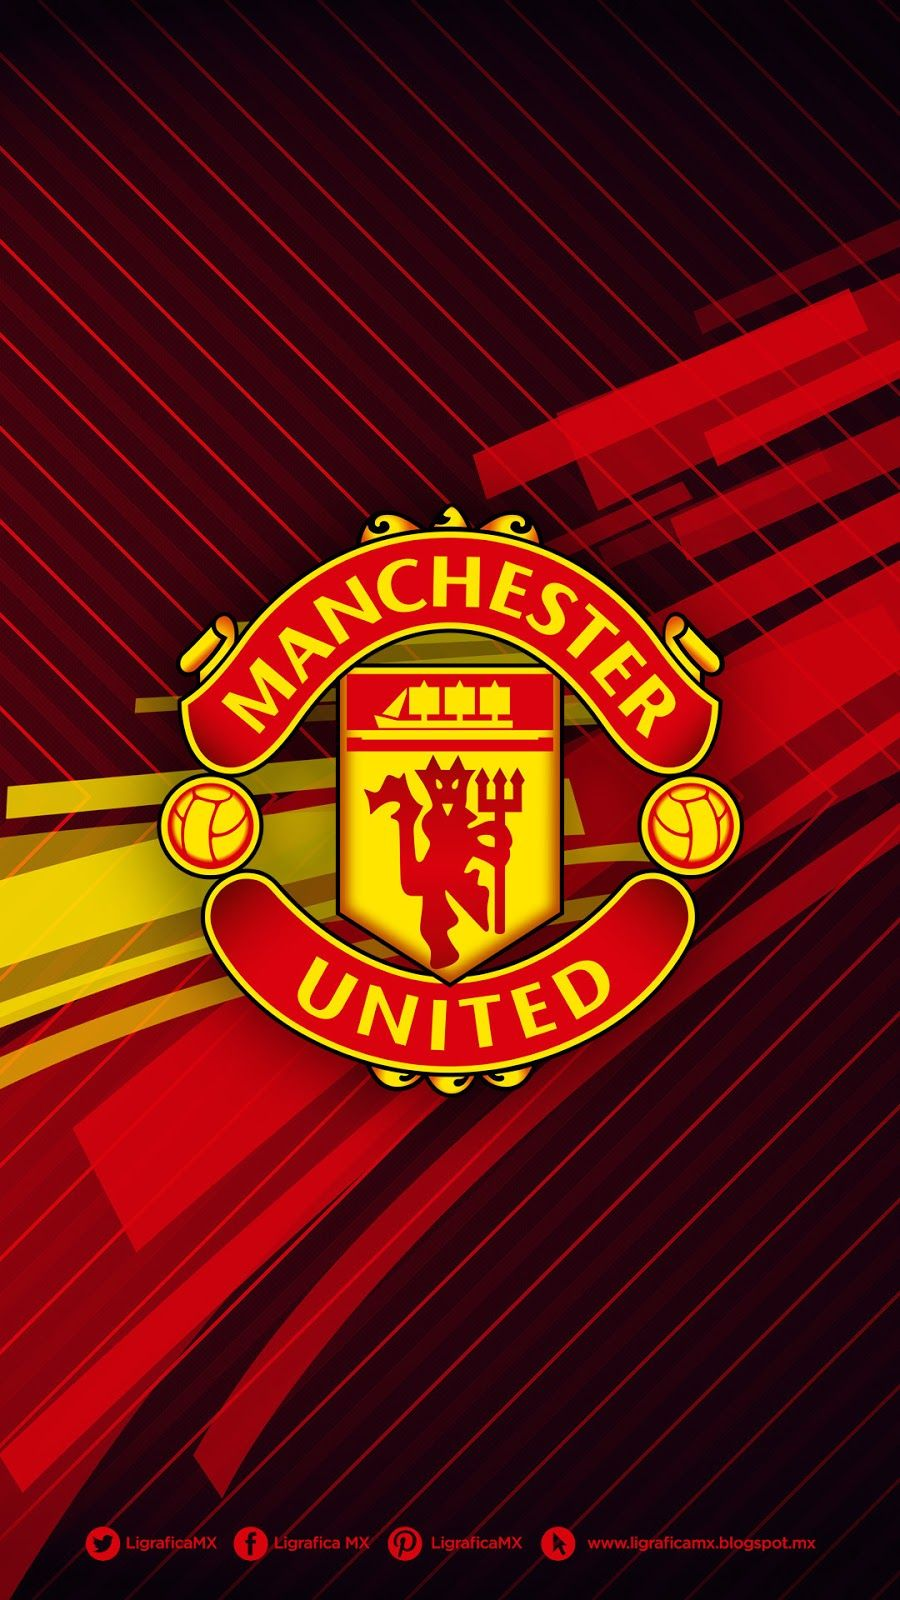 Manchester United Iphone Wallpaper Hd In 2020 Manchester United Wallpaper Manchester United Wallpapers Iphone Manchester United